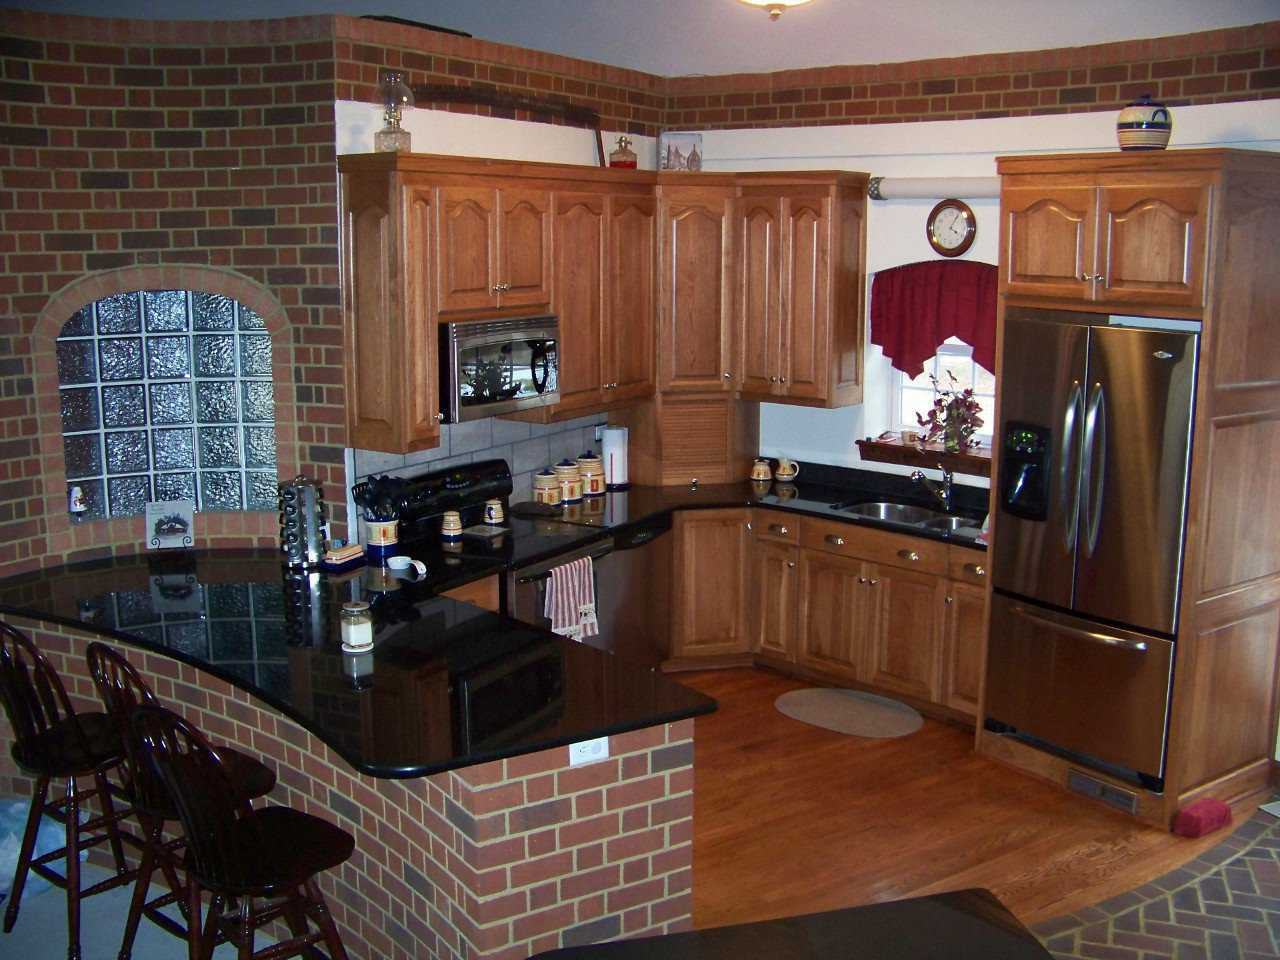 Homey, efficient kitchen — The warm reds and browns in the wood and brick make this an inviting cooking area.